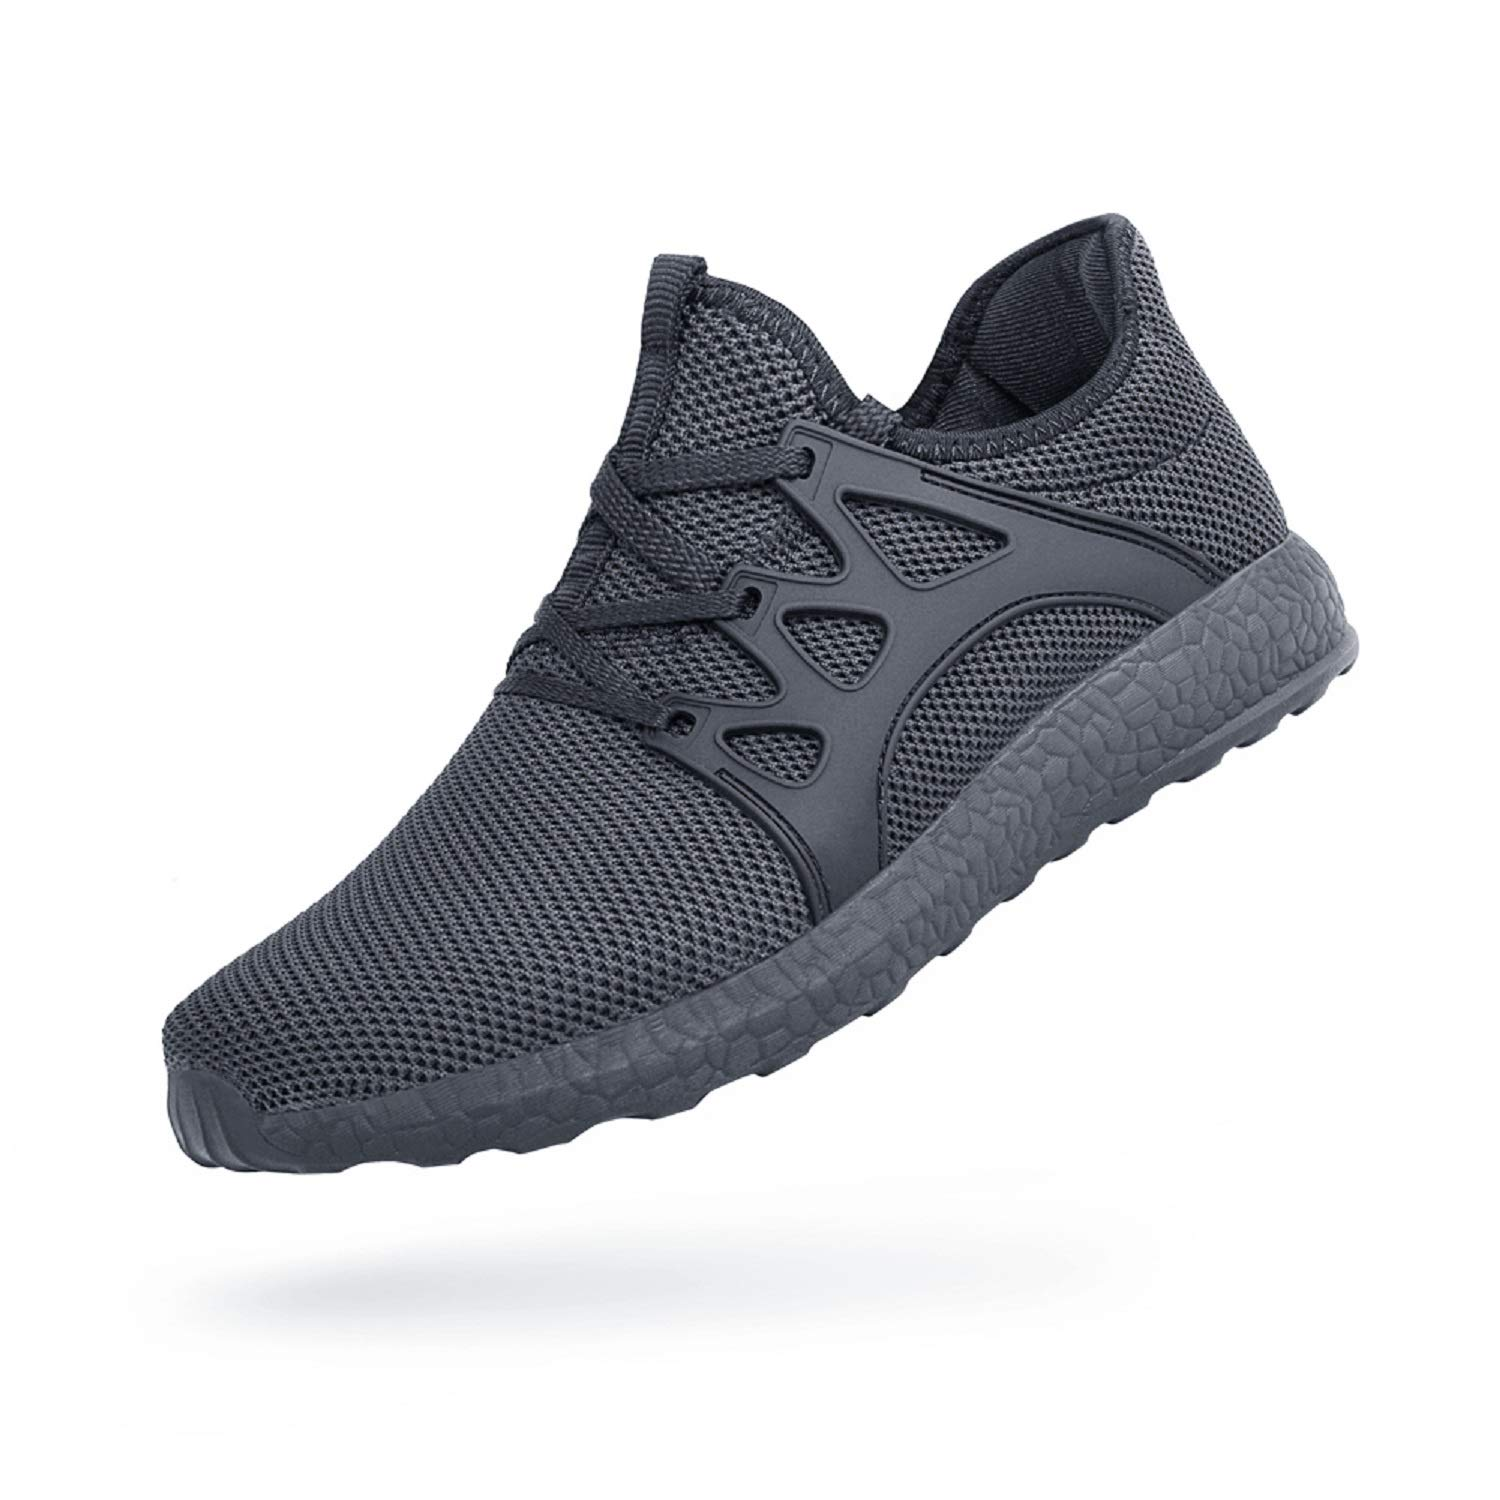 QANSI Men's Sneakers Mesh Ultra Lightweight Breathable Athletic Running Walking Gym Shoes Gray Size 9.5 by QANSI (Image #1)